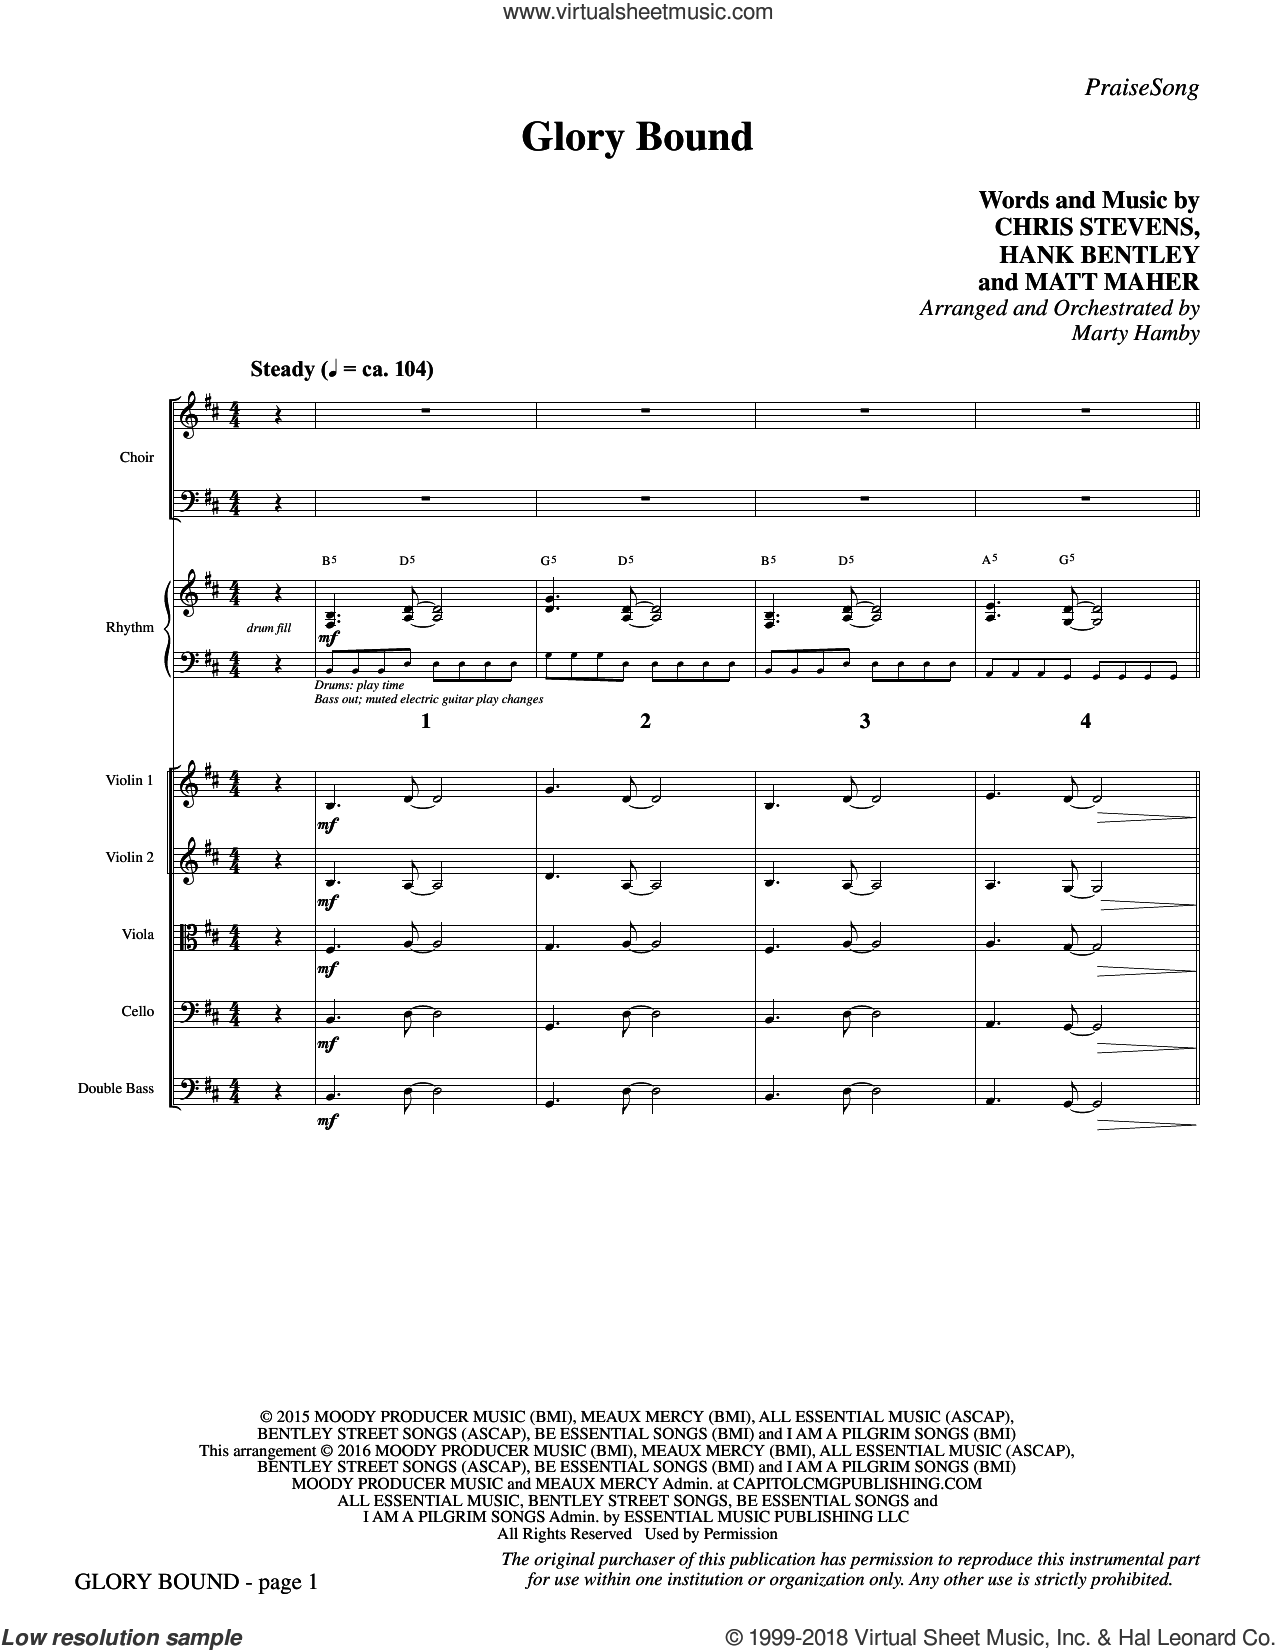 Glory Bound (COMPLETE) sheet music for orchestra/band by Matt Maher, Chris Stevens, Hank Bentley and Marty Hamby, intermediate skill level